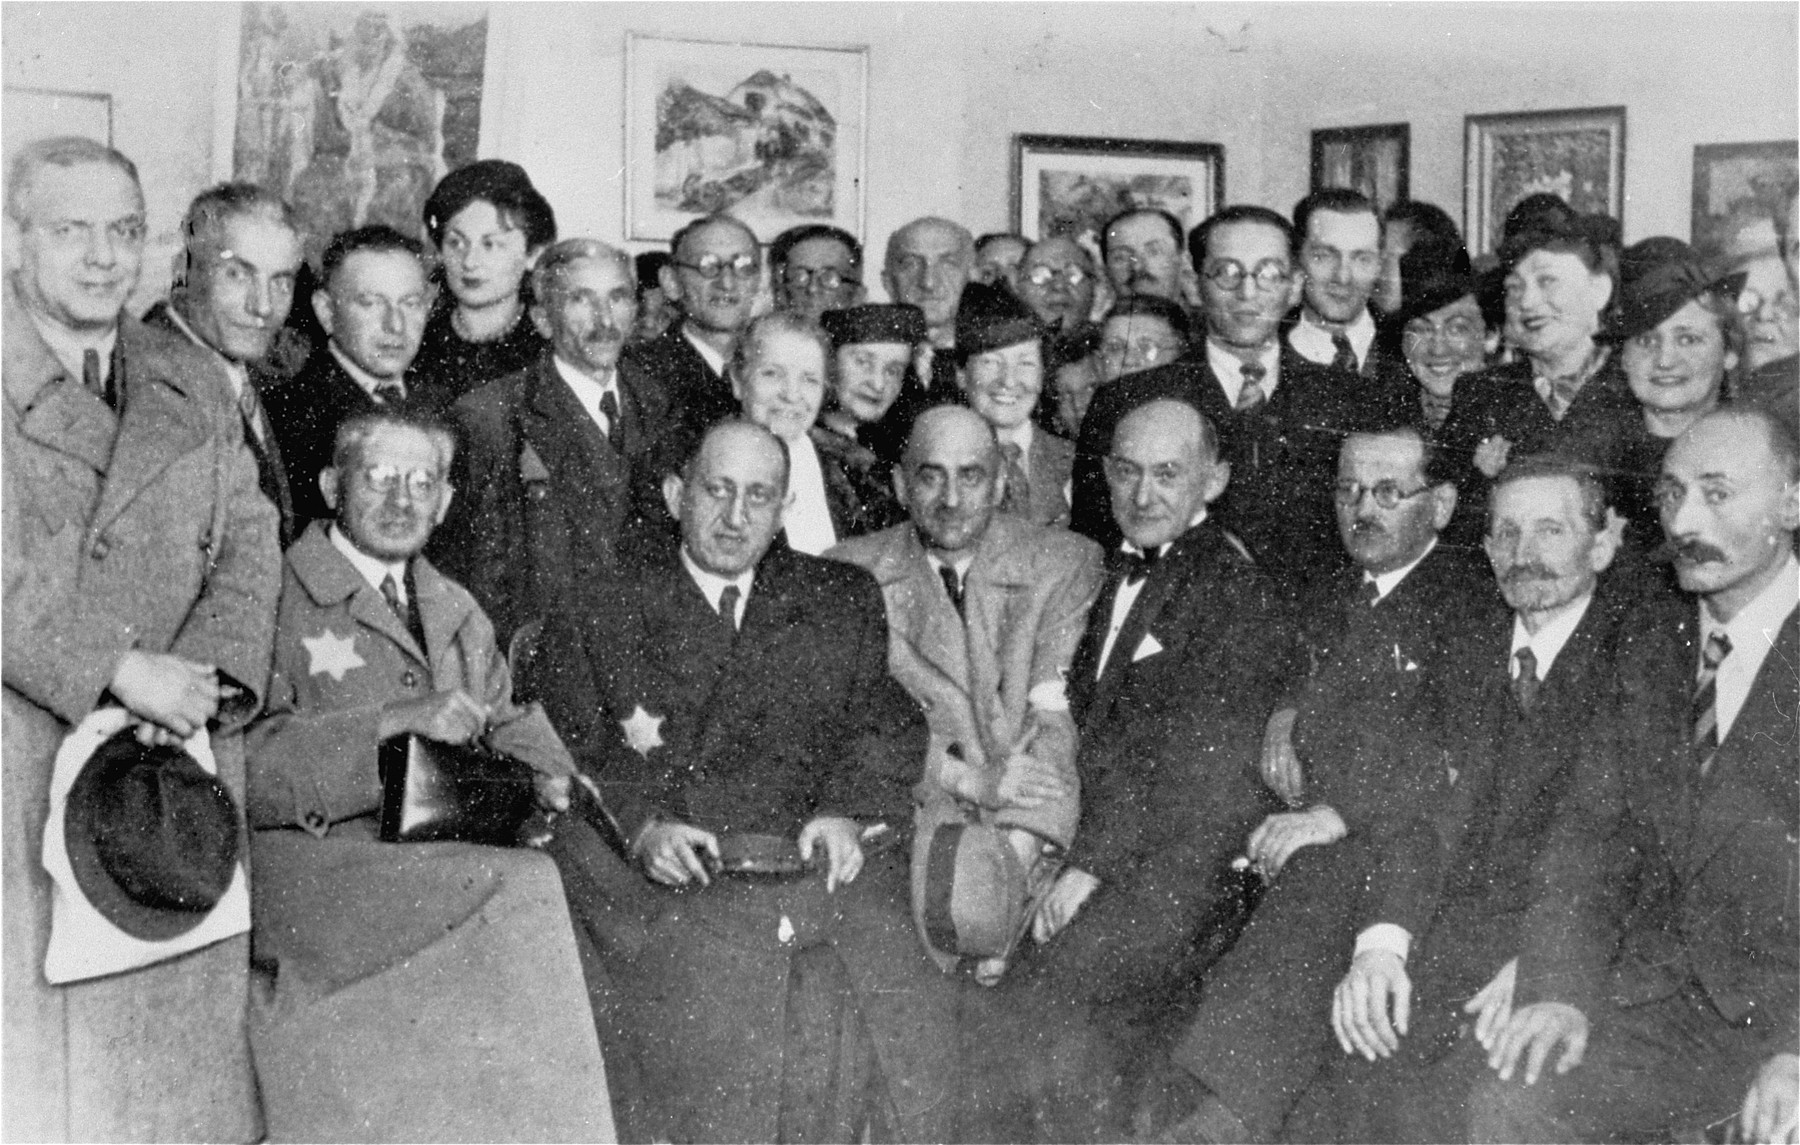 Group portrait of members of the Lodz ghetto administration at a cultural event in the ghetto.  Among those pictured are Leon Rozenblat (seated, third from the left) and Dr. Leon Szykier (seated second from the left).